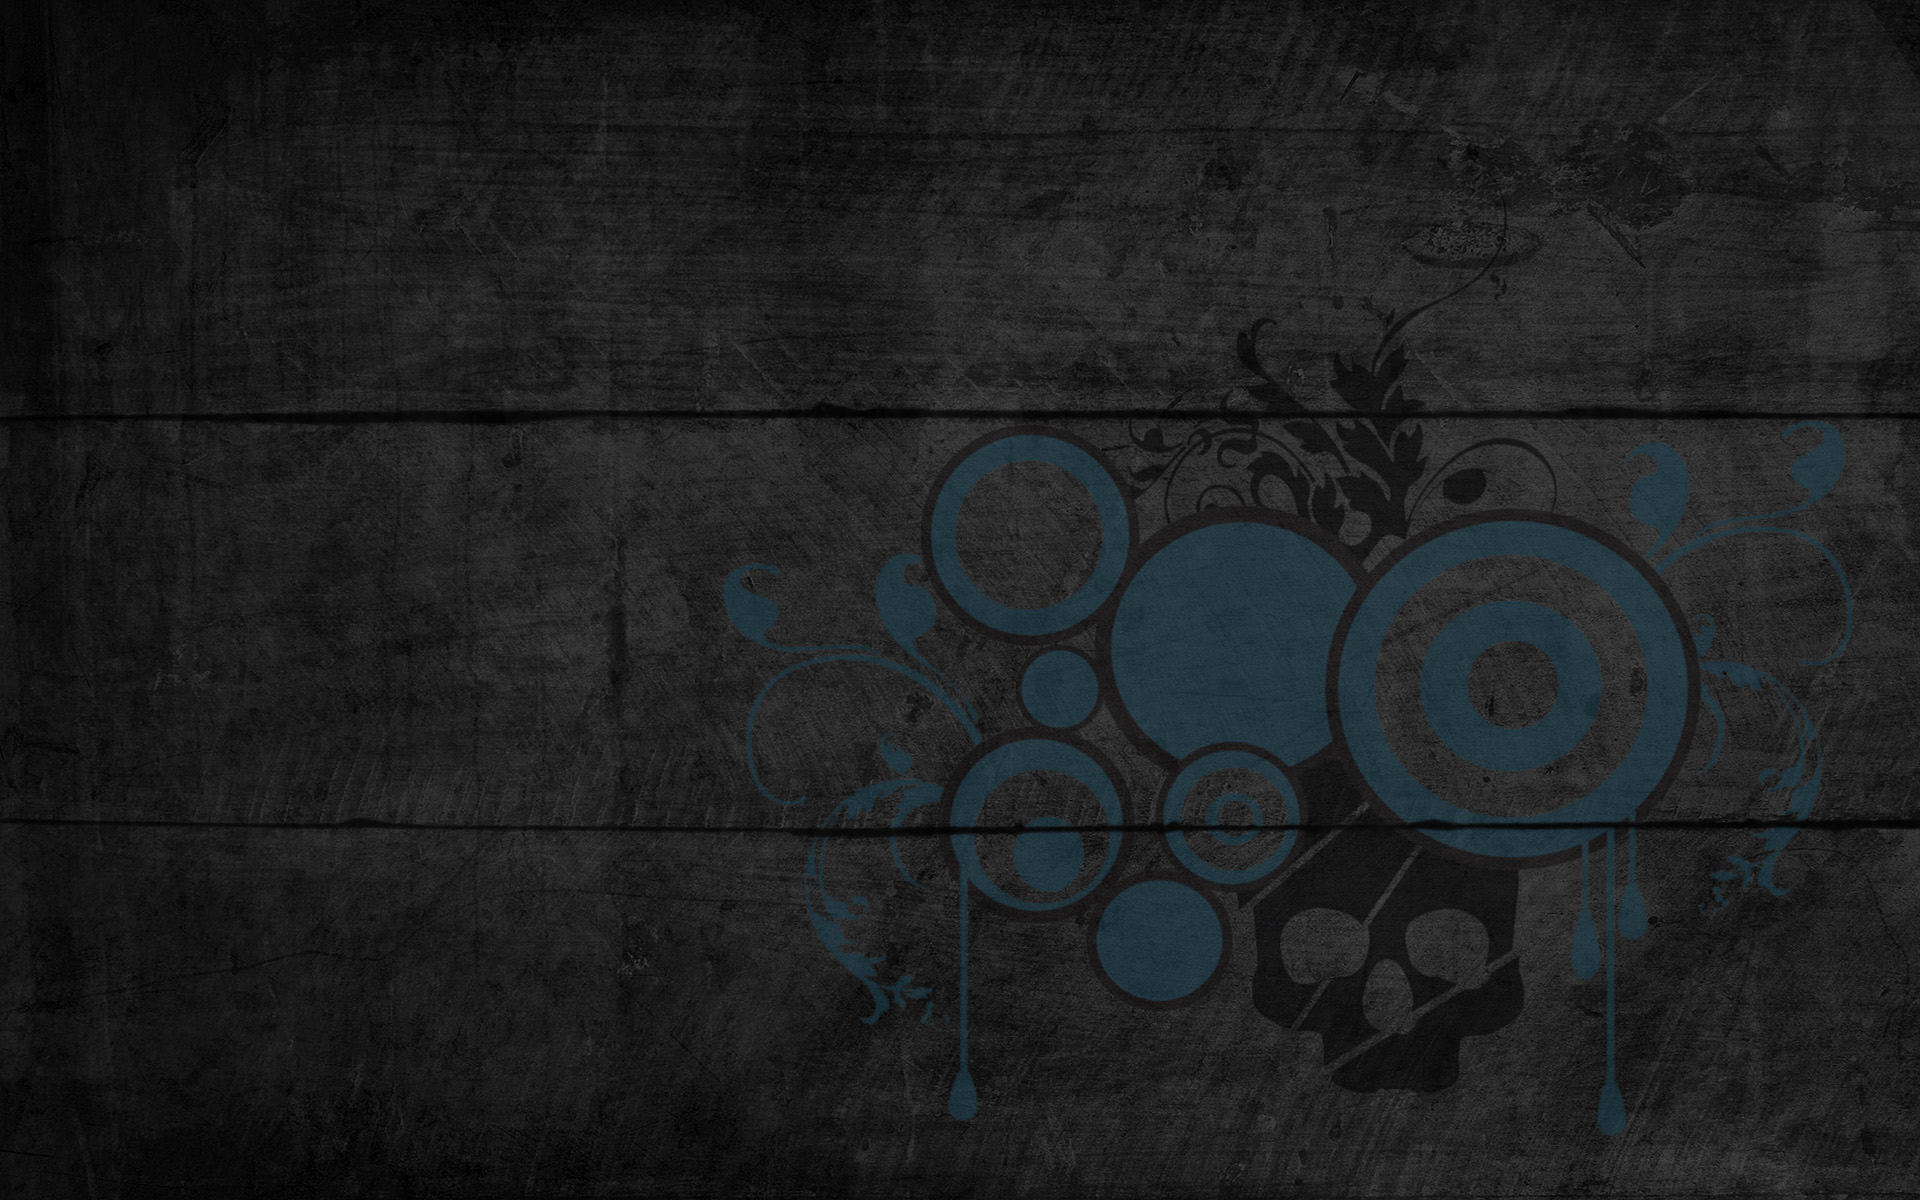 Top 35 classic background images for wordpress blogs page 2 of 2 lava360 - Best classic wallpaper ...